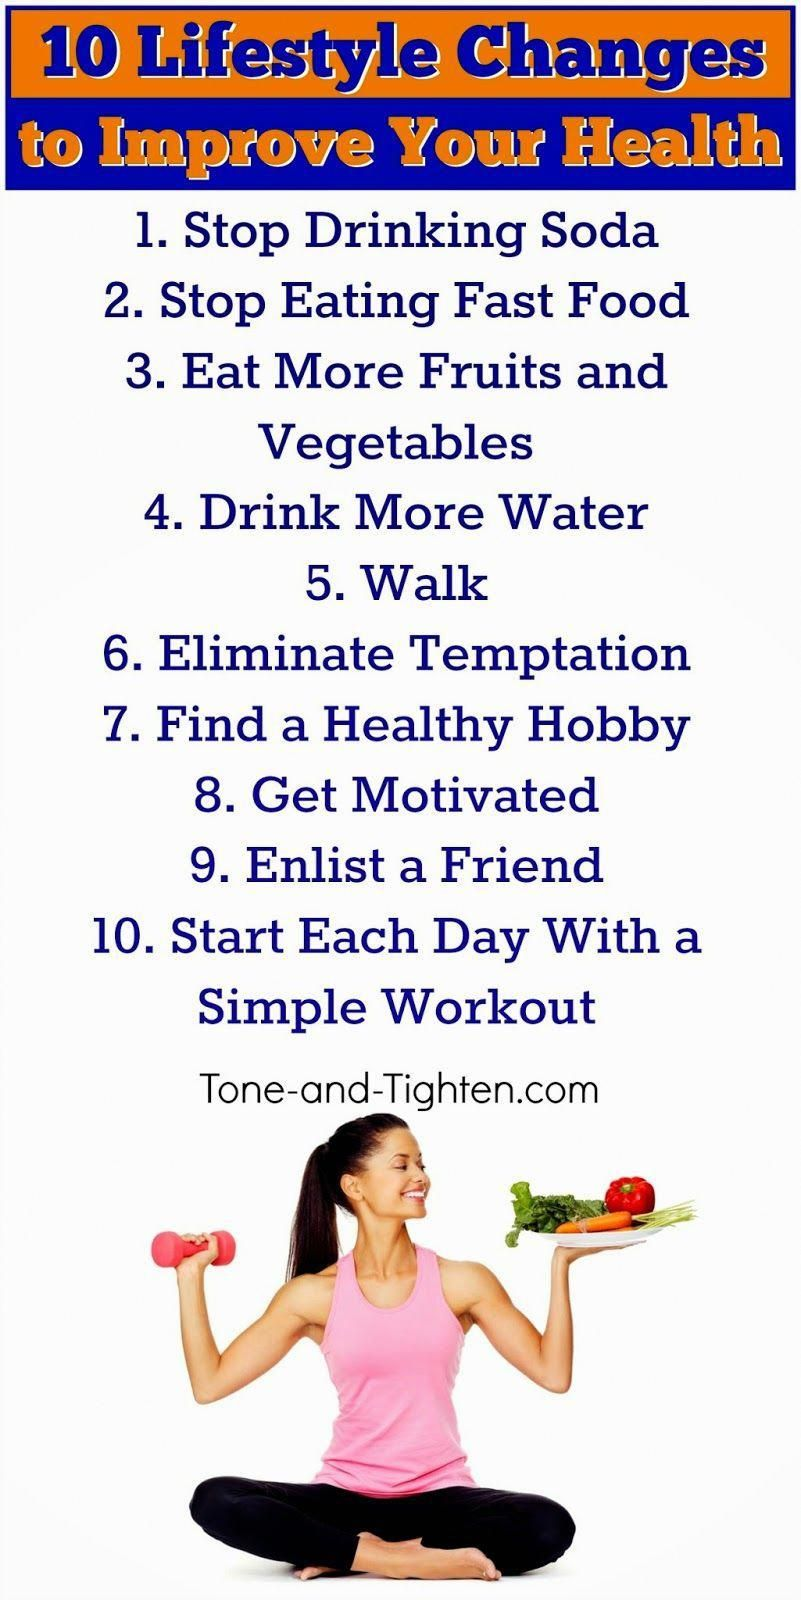 10 easy lifestyle changes to help you lose weight and get healthy. #fitness #advice from Tone-and-Ti...